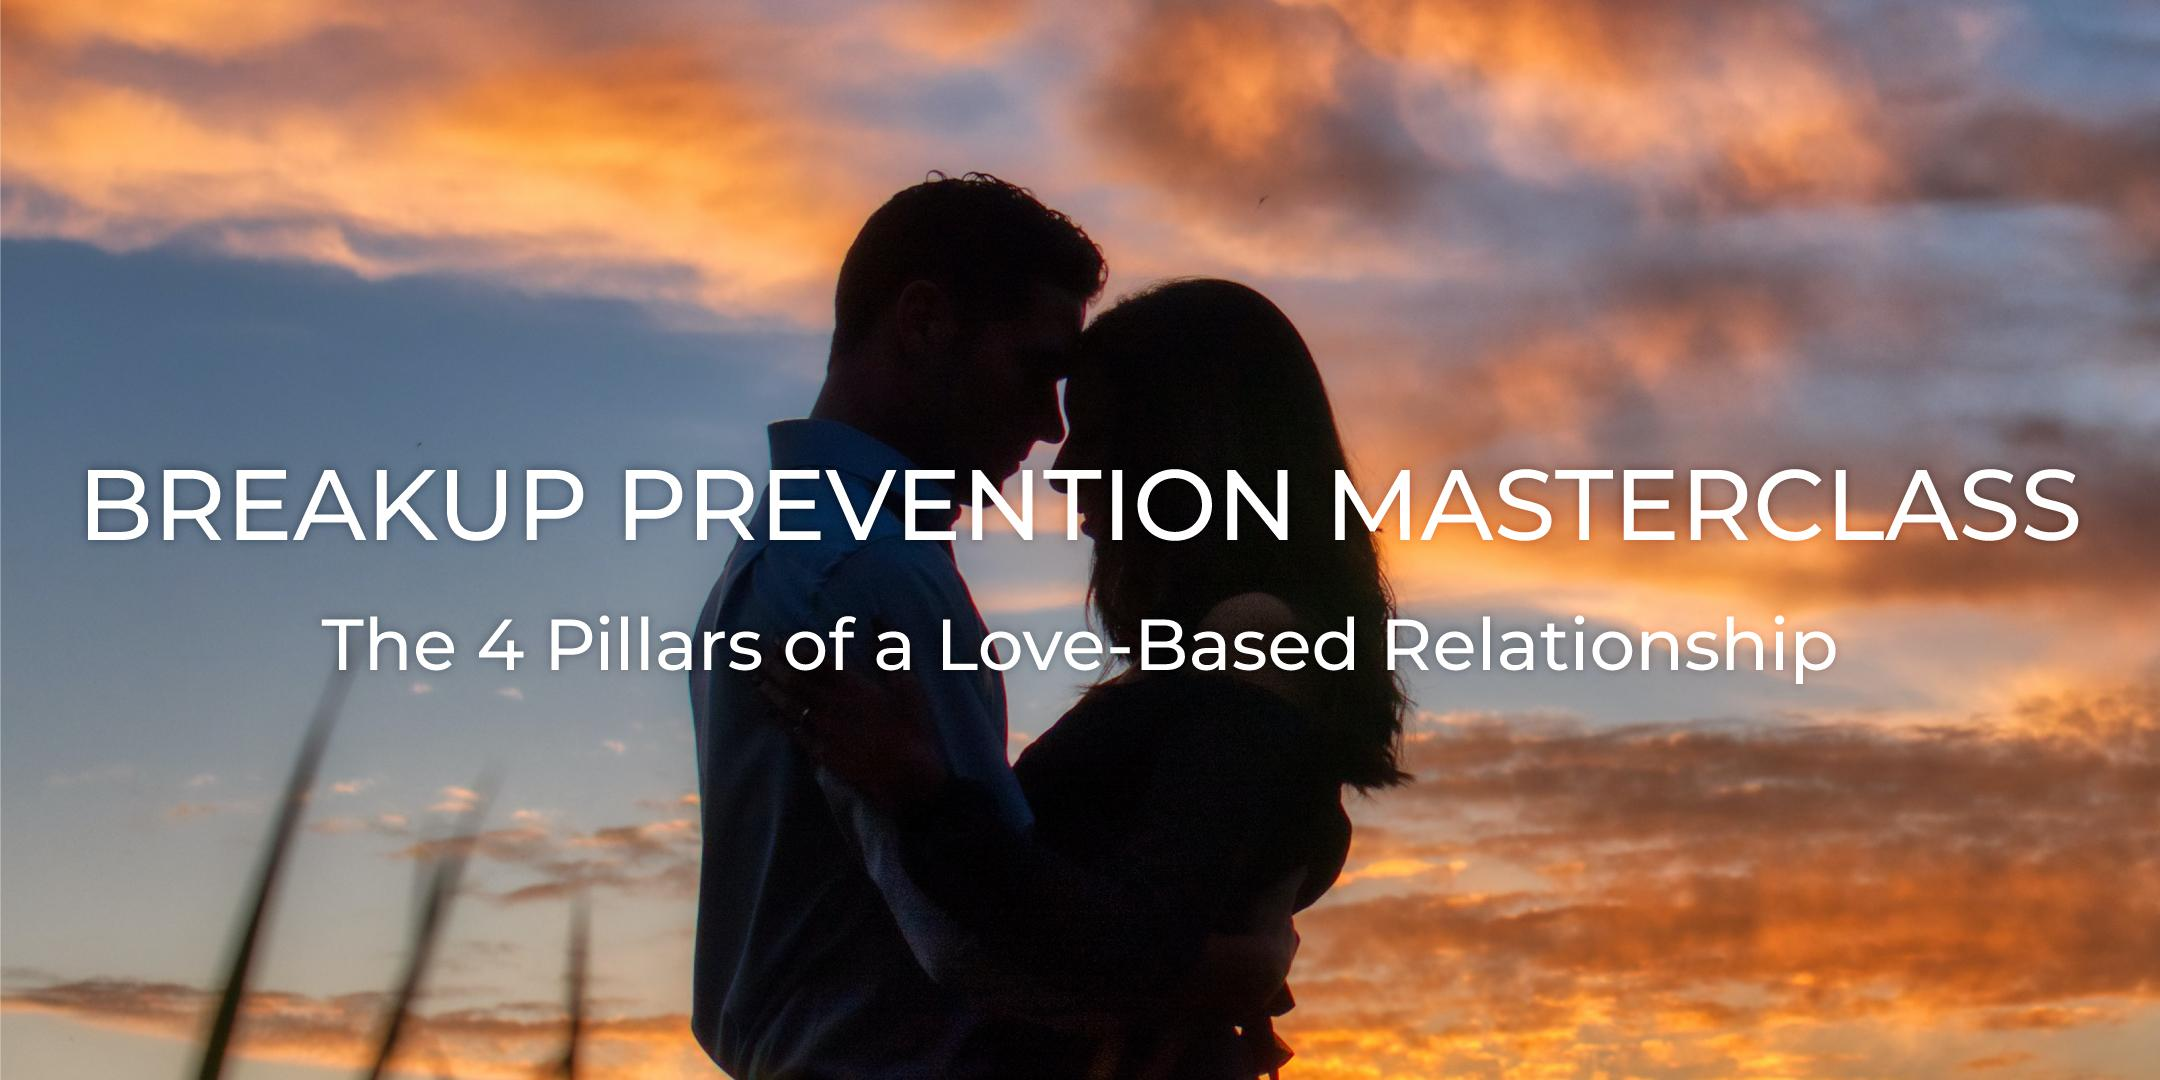 Breakup Prevention Masterclass - The 4 Pillars of a Love-Based Relationship